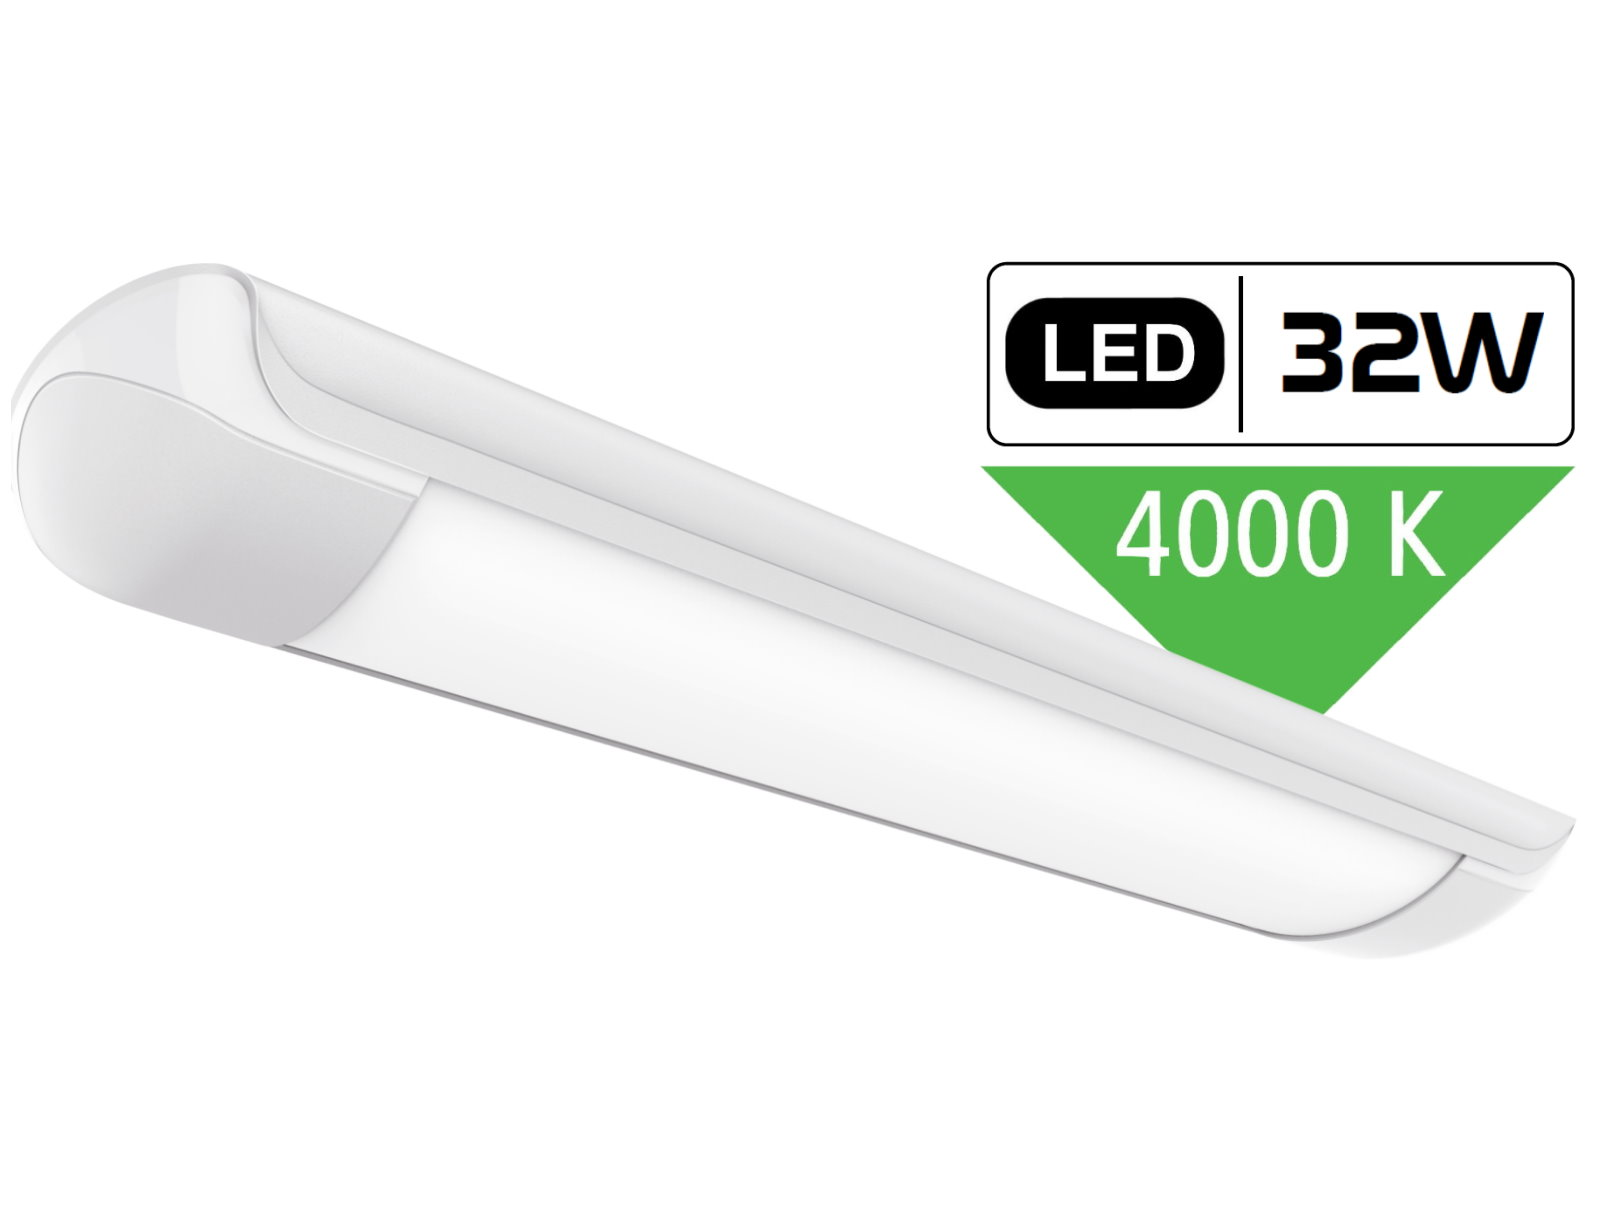 LED Wannenleuchte - 32W tagesweiß